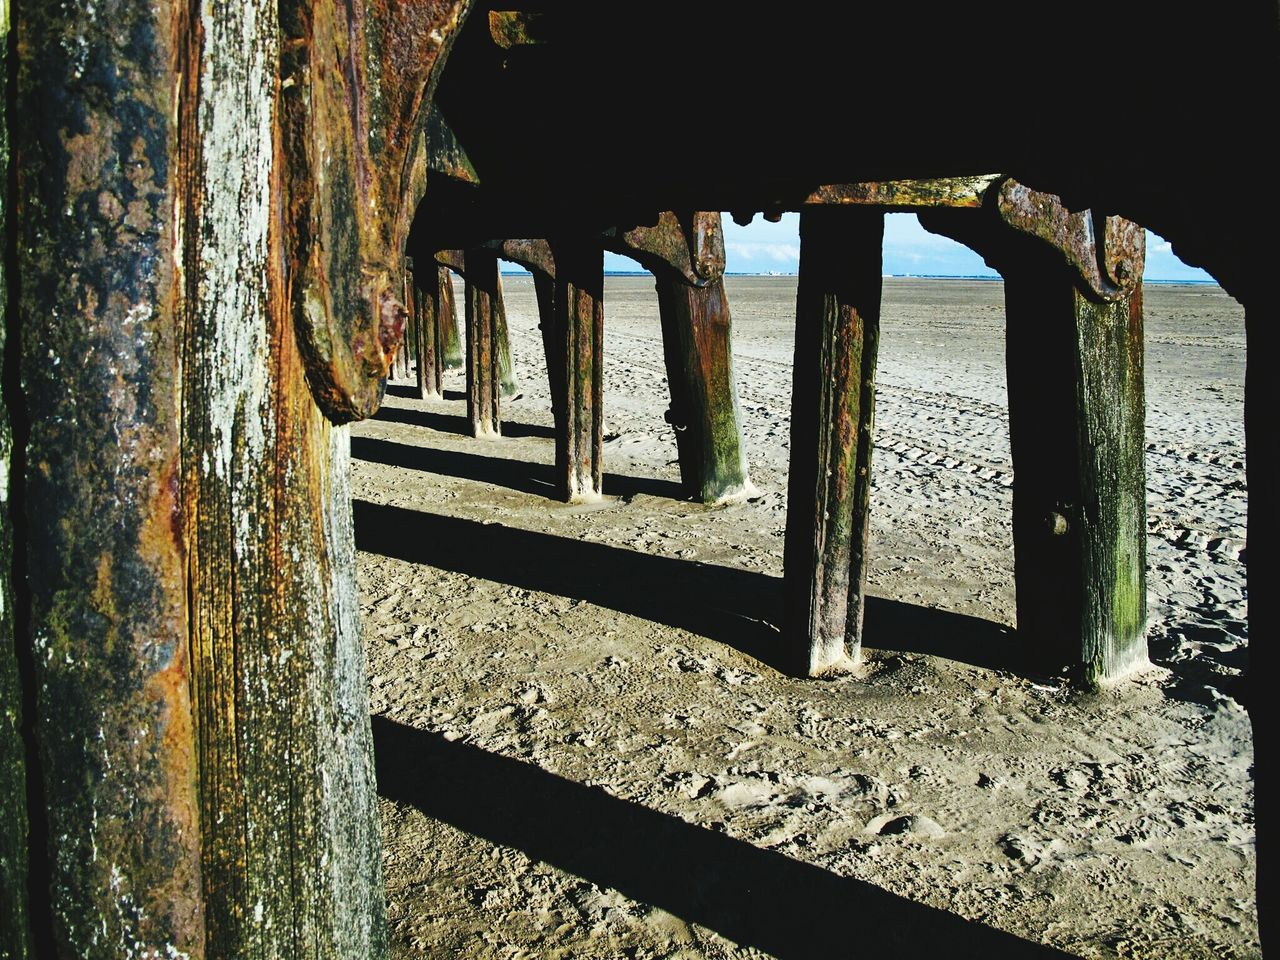 Underneath View Of Weathered Pier At Beach